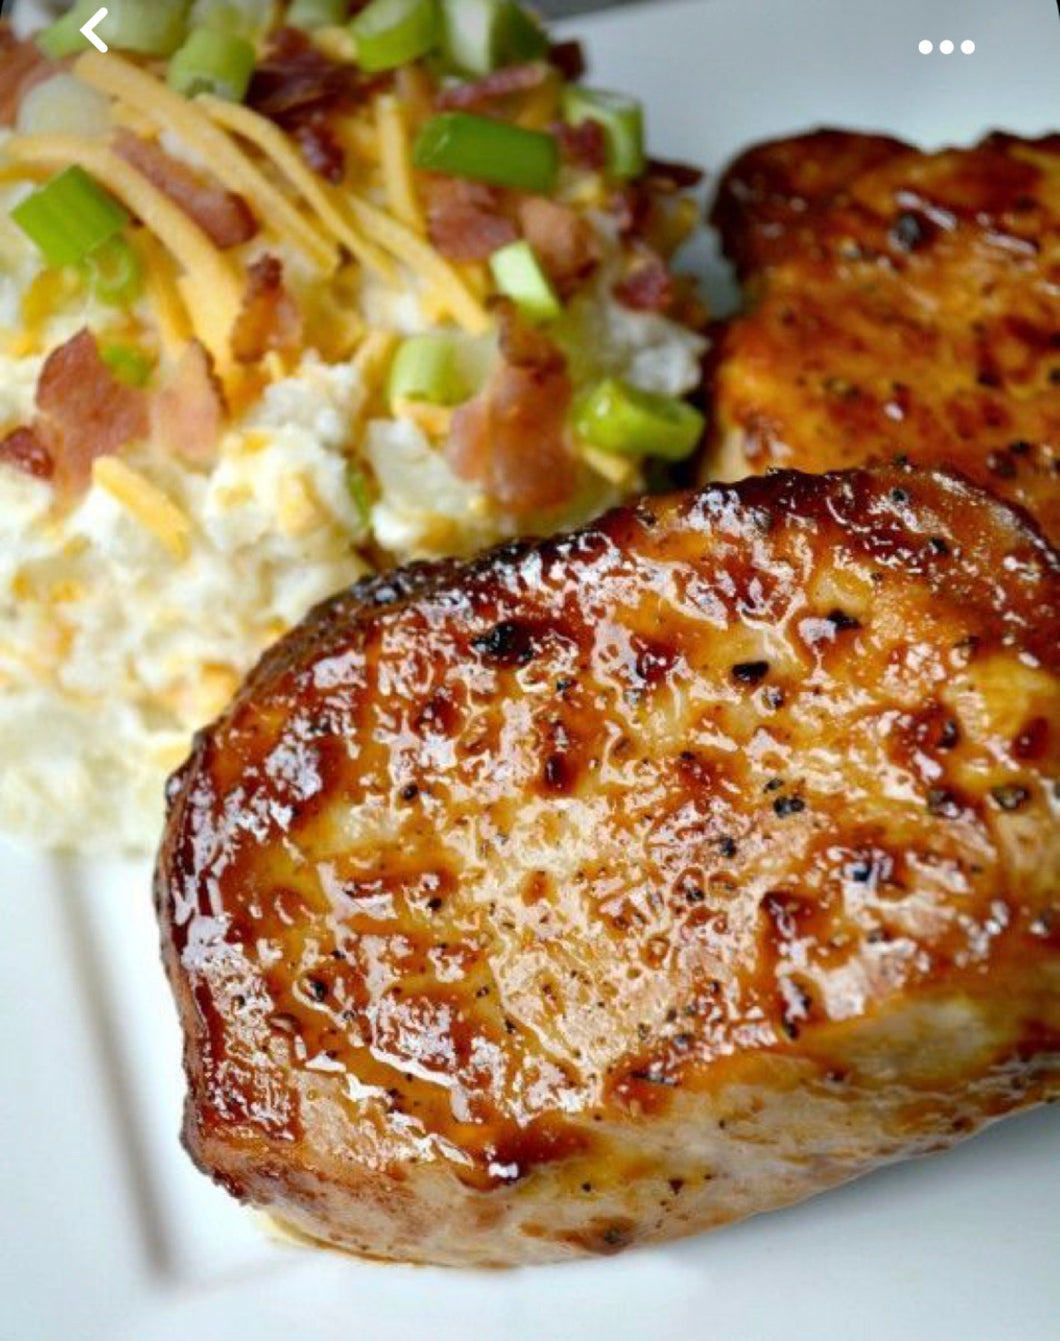 BBQ Pork chop with loaded baked potato salad